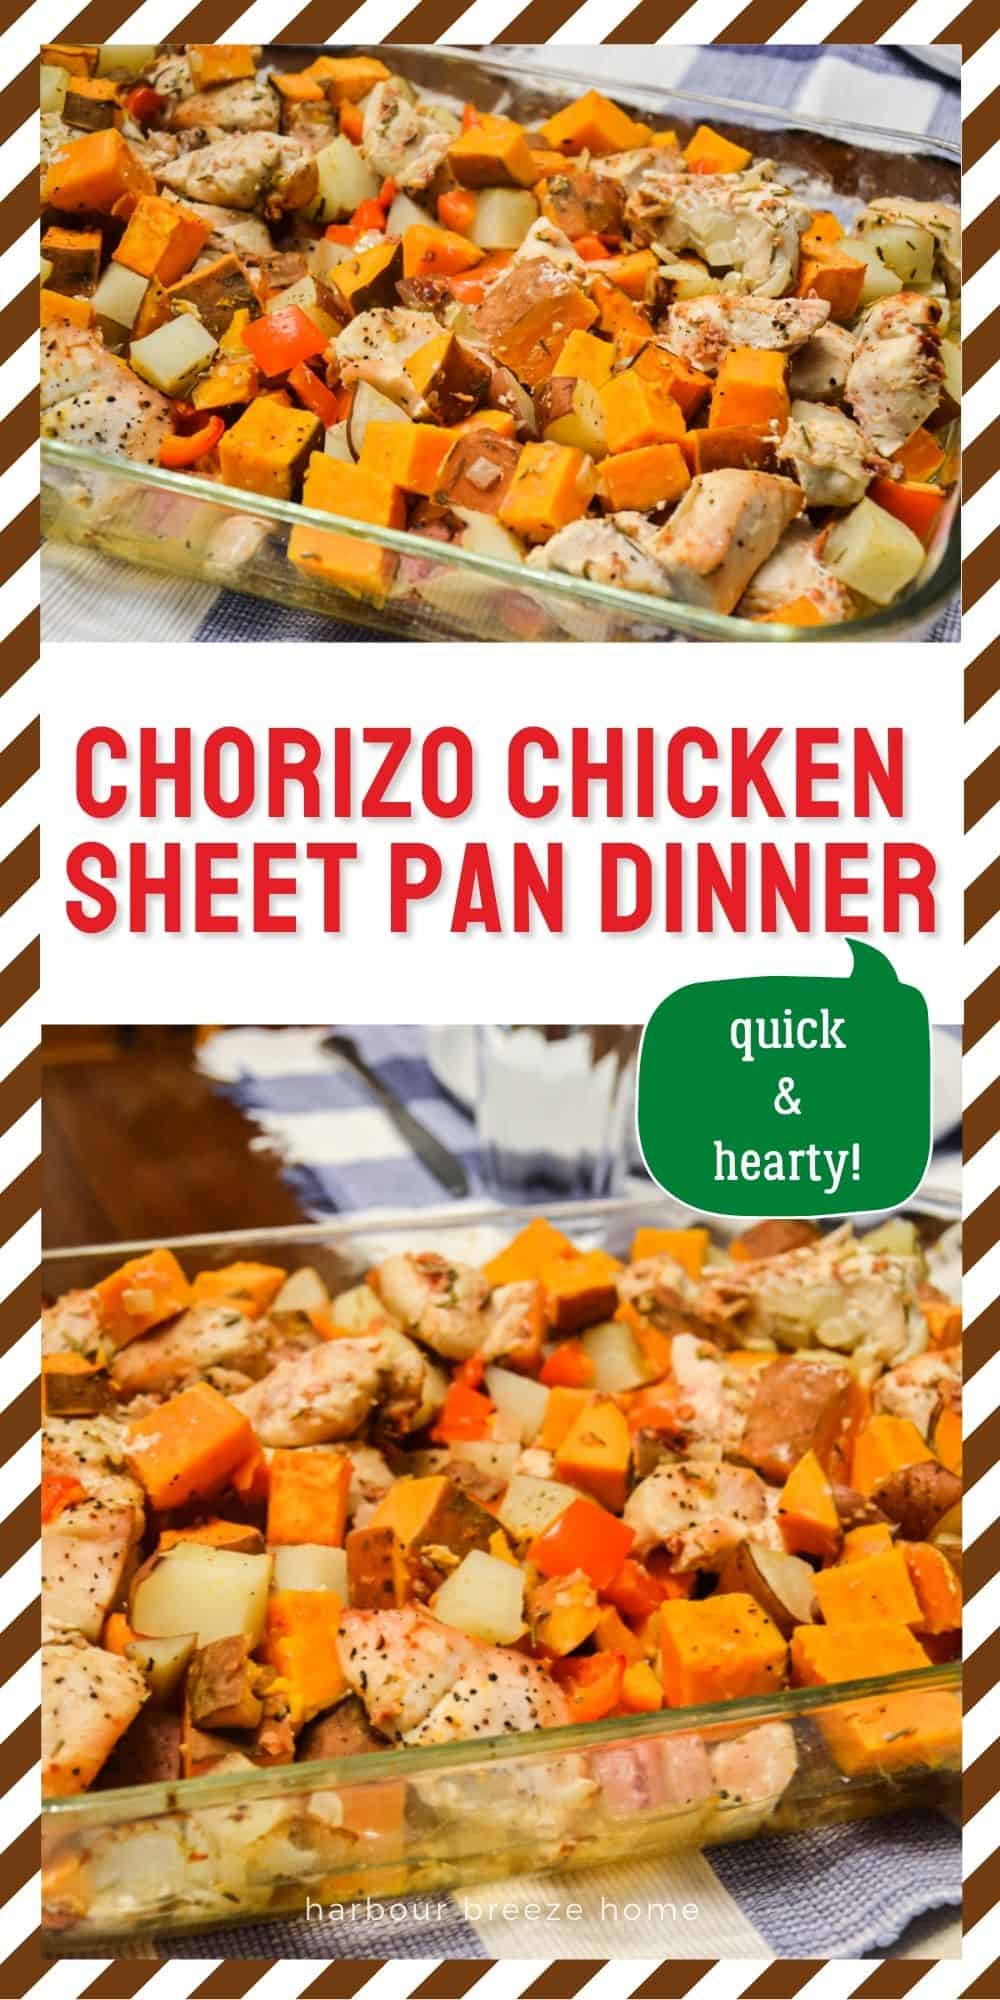 Chorizo Chicken Sheet Pan Dinner in a pan sitting on a table